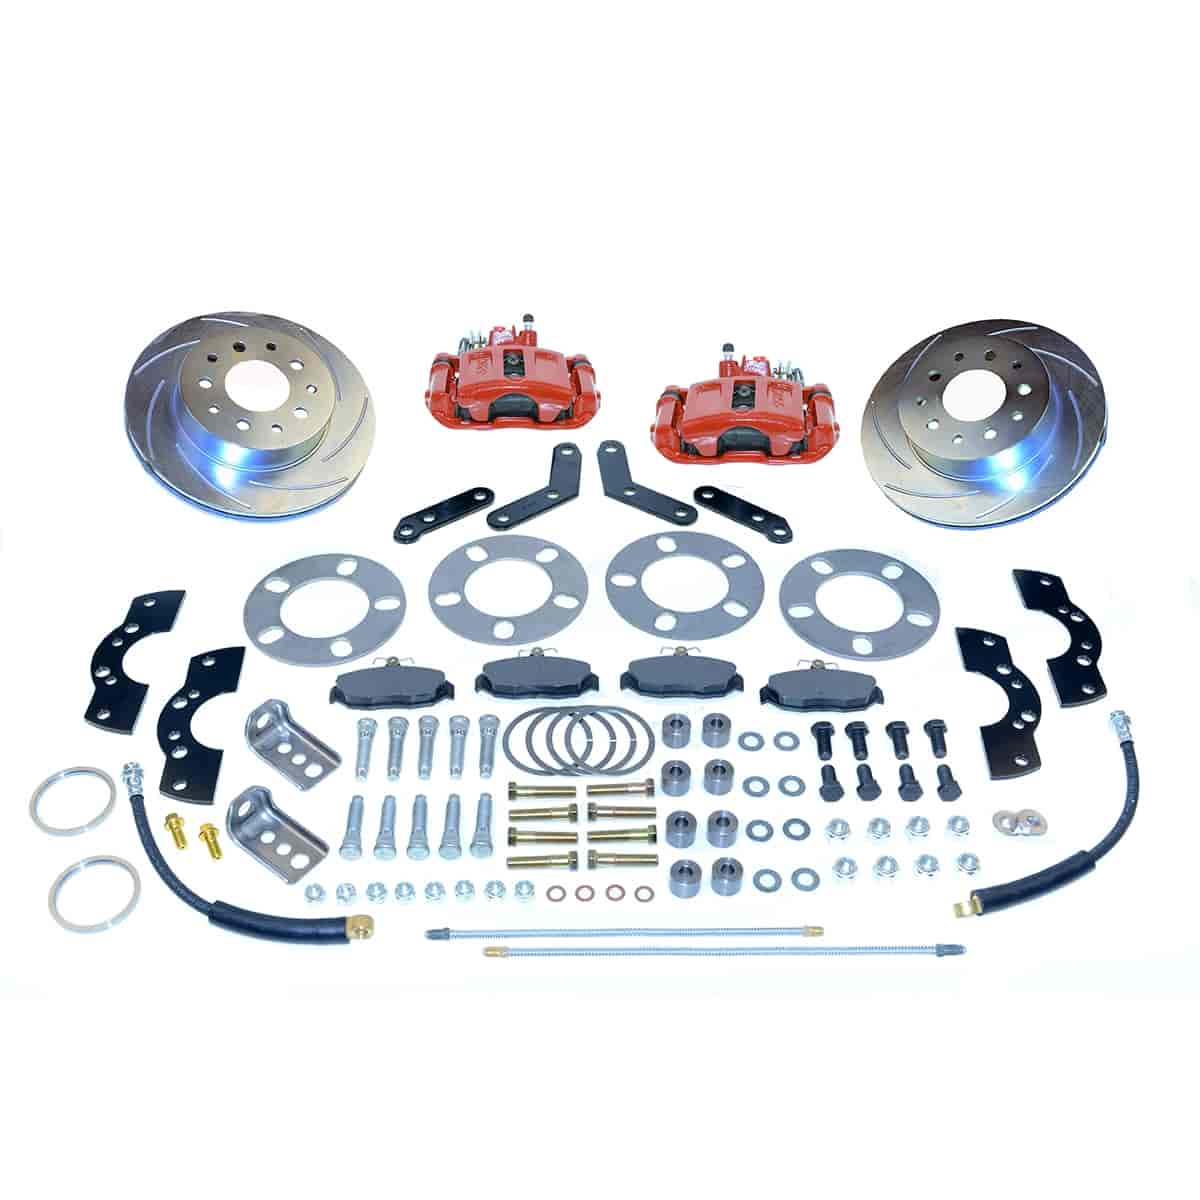 Stainless Steel Brakes A110-2R - Stainless Steel Brakes Single Piston Rear Disc Brake Conversion Kit